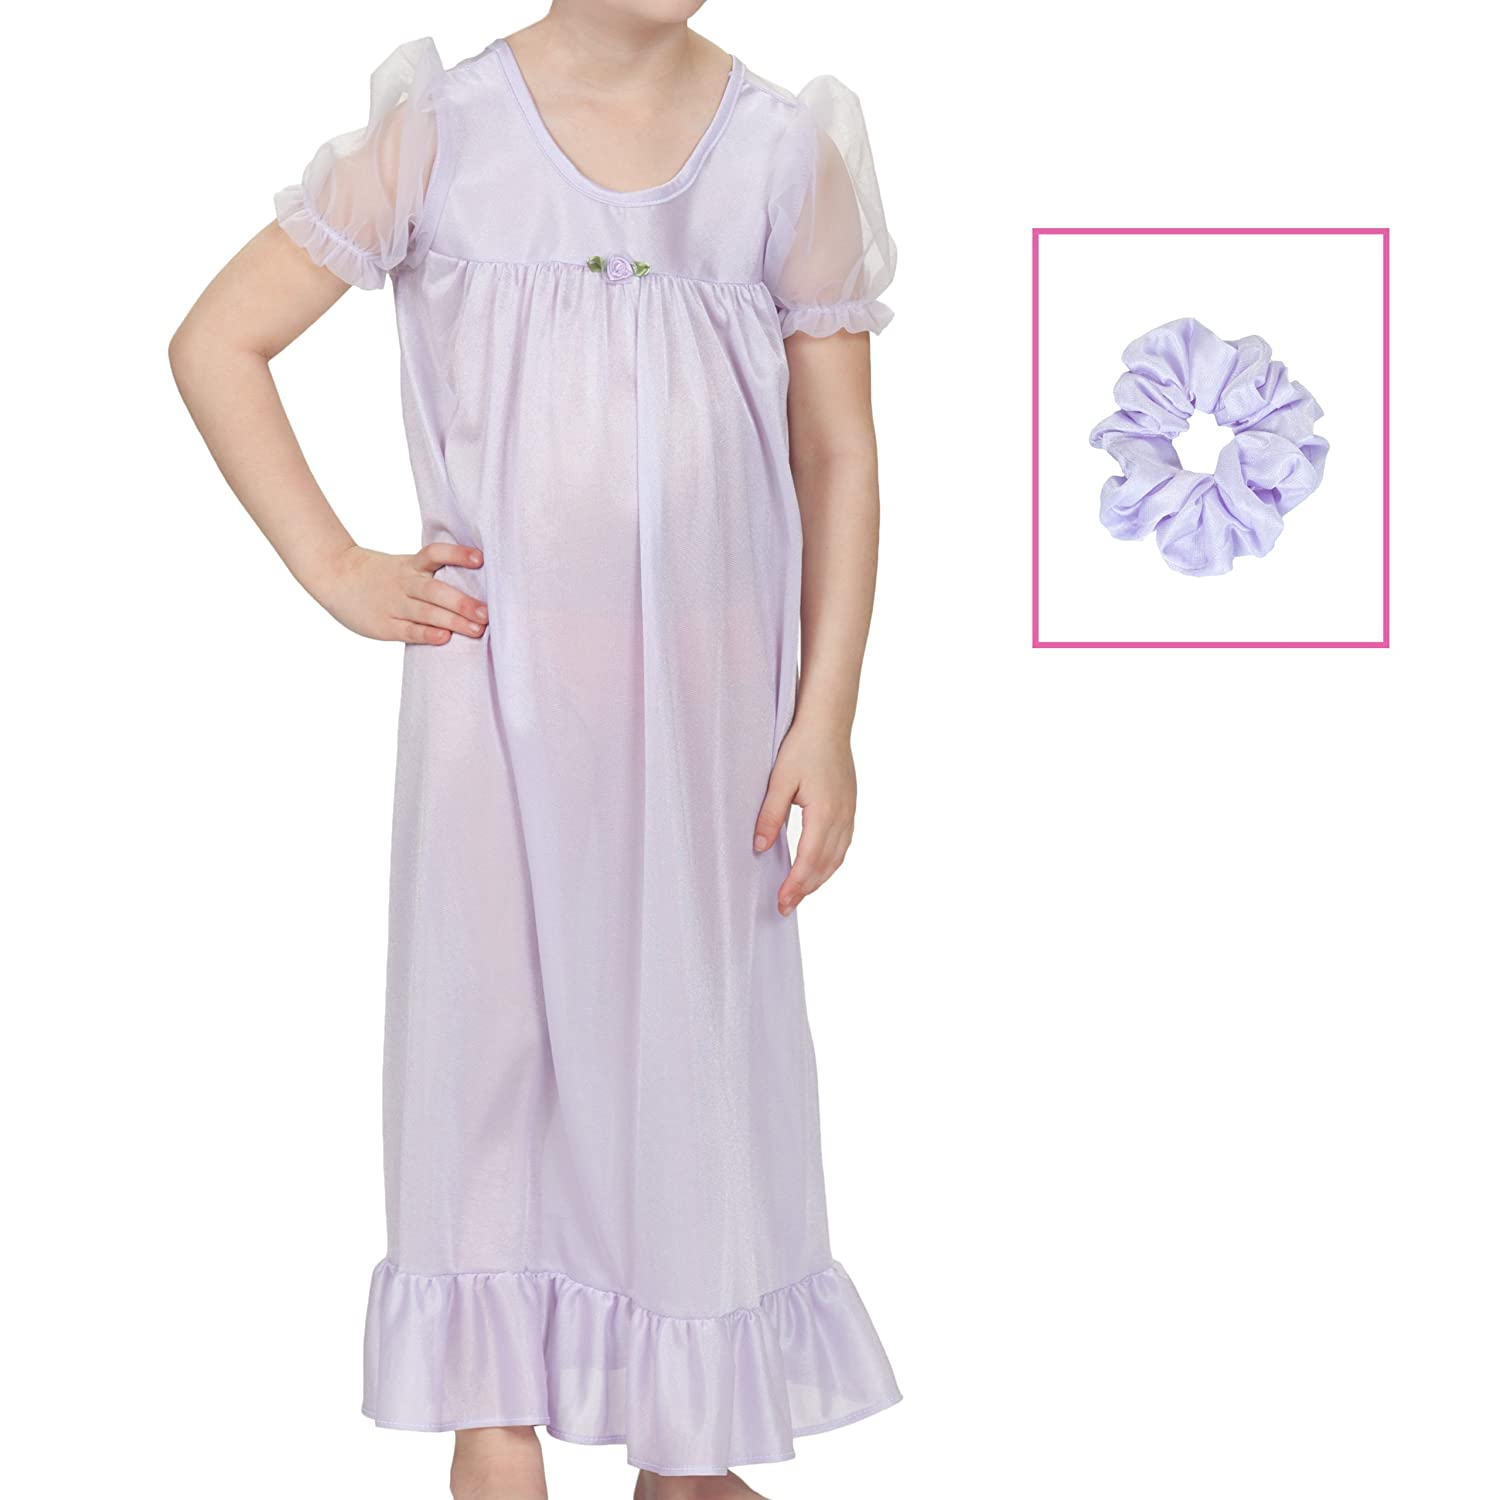 3107bc7e3 Amazon.com  Laura Dare Little Girls Short Sleeve Peignoir Nightgown Robe  Set w Scrunch 2T-6X  Clothing